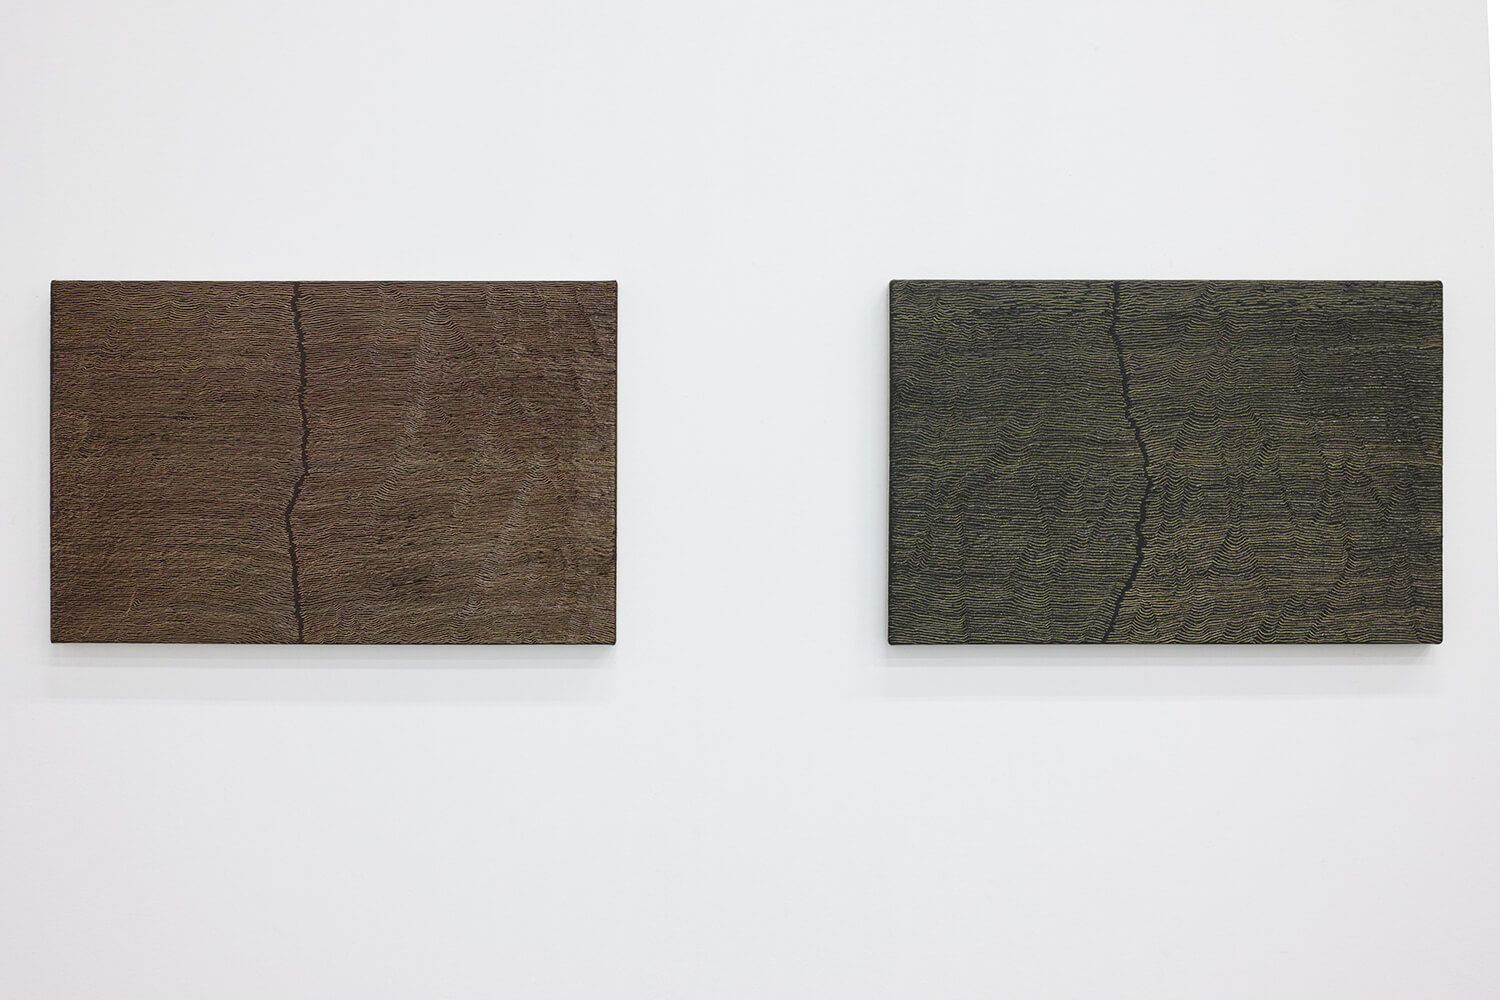 'Fissure 1'  (left) & 'Fissure 12' (right)<br>Oil and Amber on canvas over panel, 33.7 x 53.4 cm, 2001 each